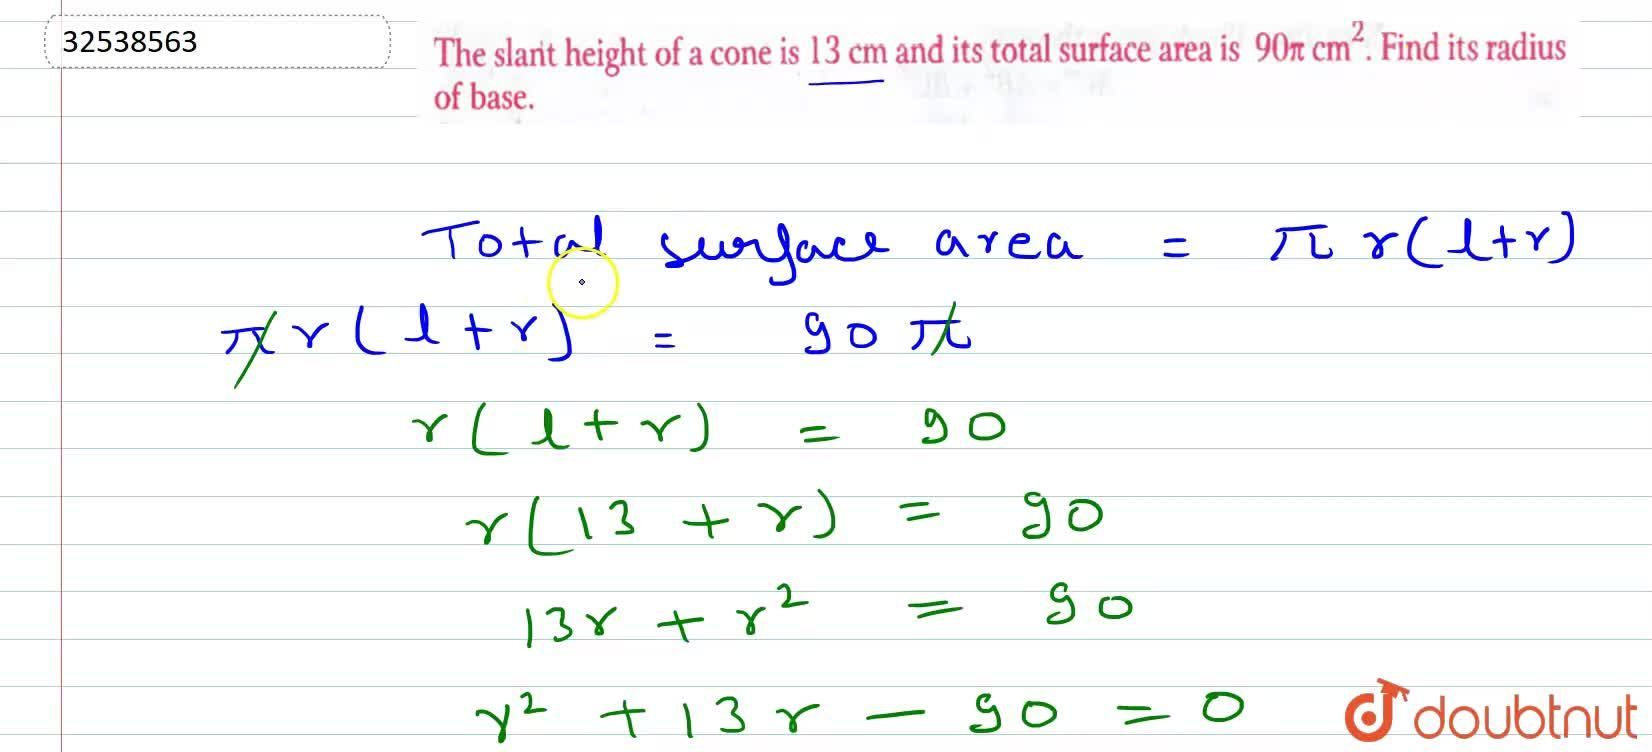 The slant height of a cone is 13 cm and its total surface area is 90pi cm^(2). Find its radius of base.